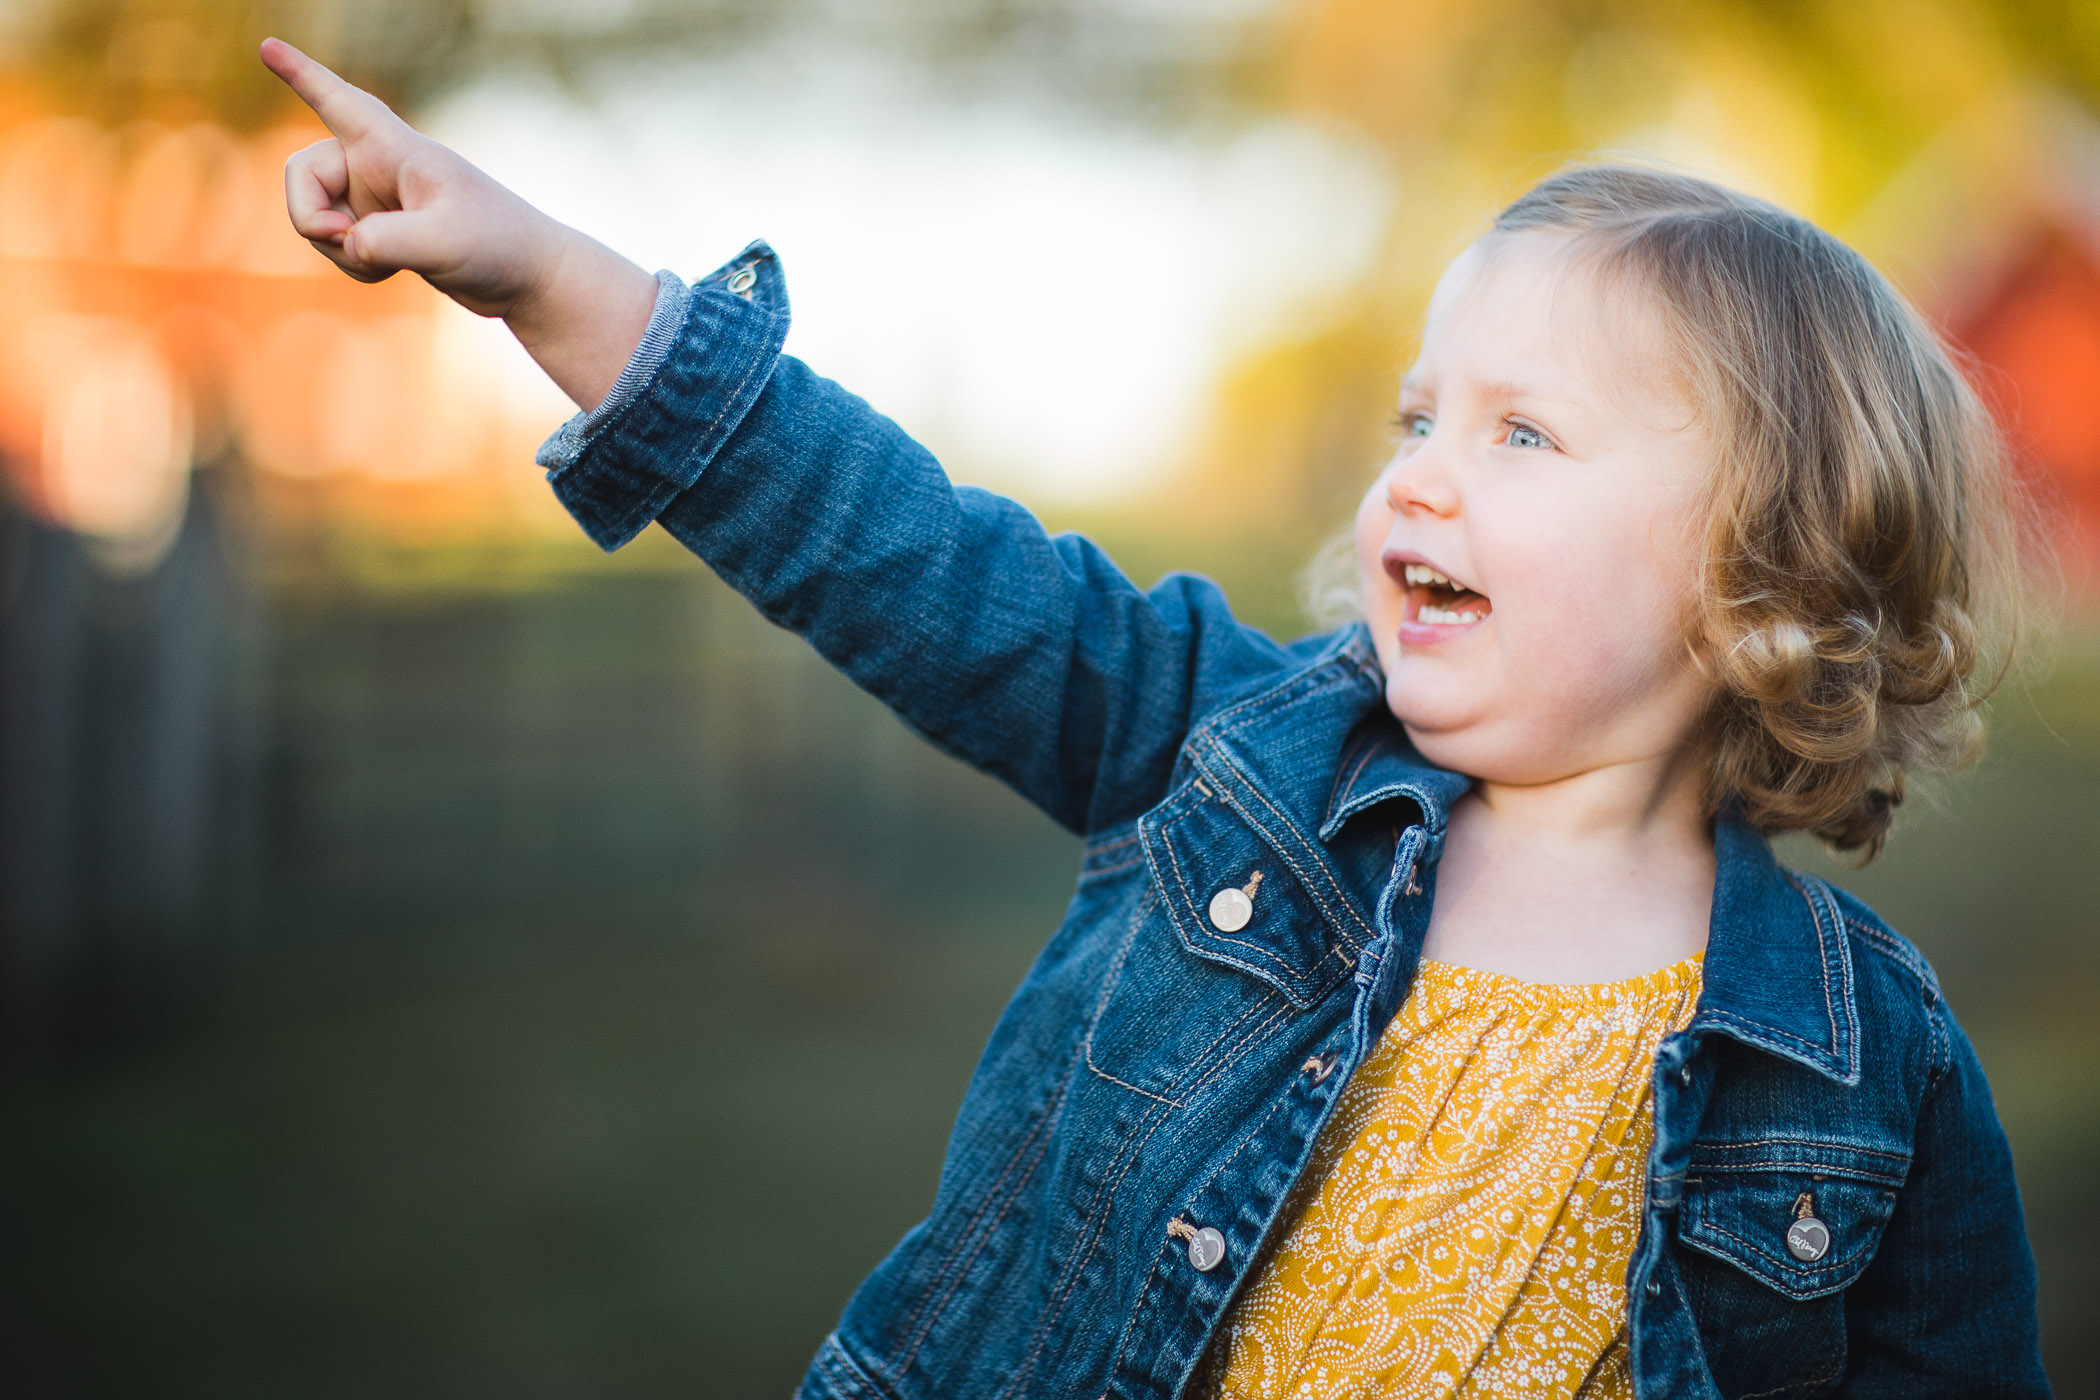 A Colorful Two-Part Autumn Family Session from Felipe 06